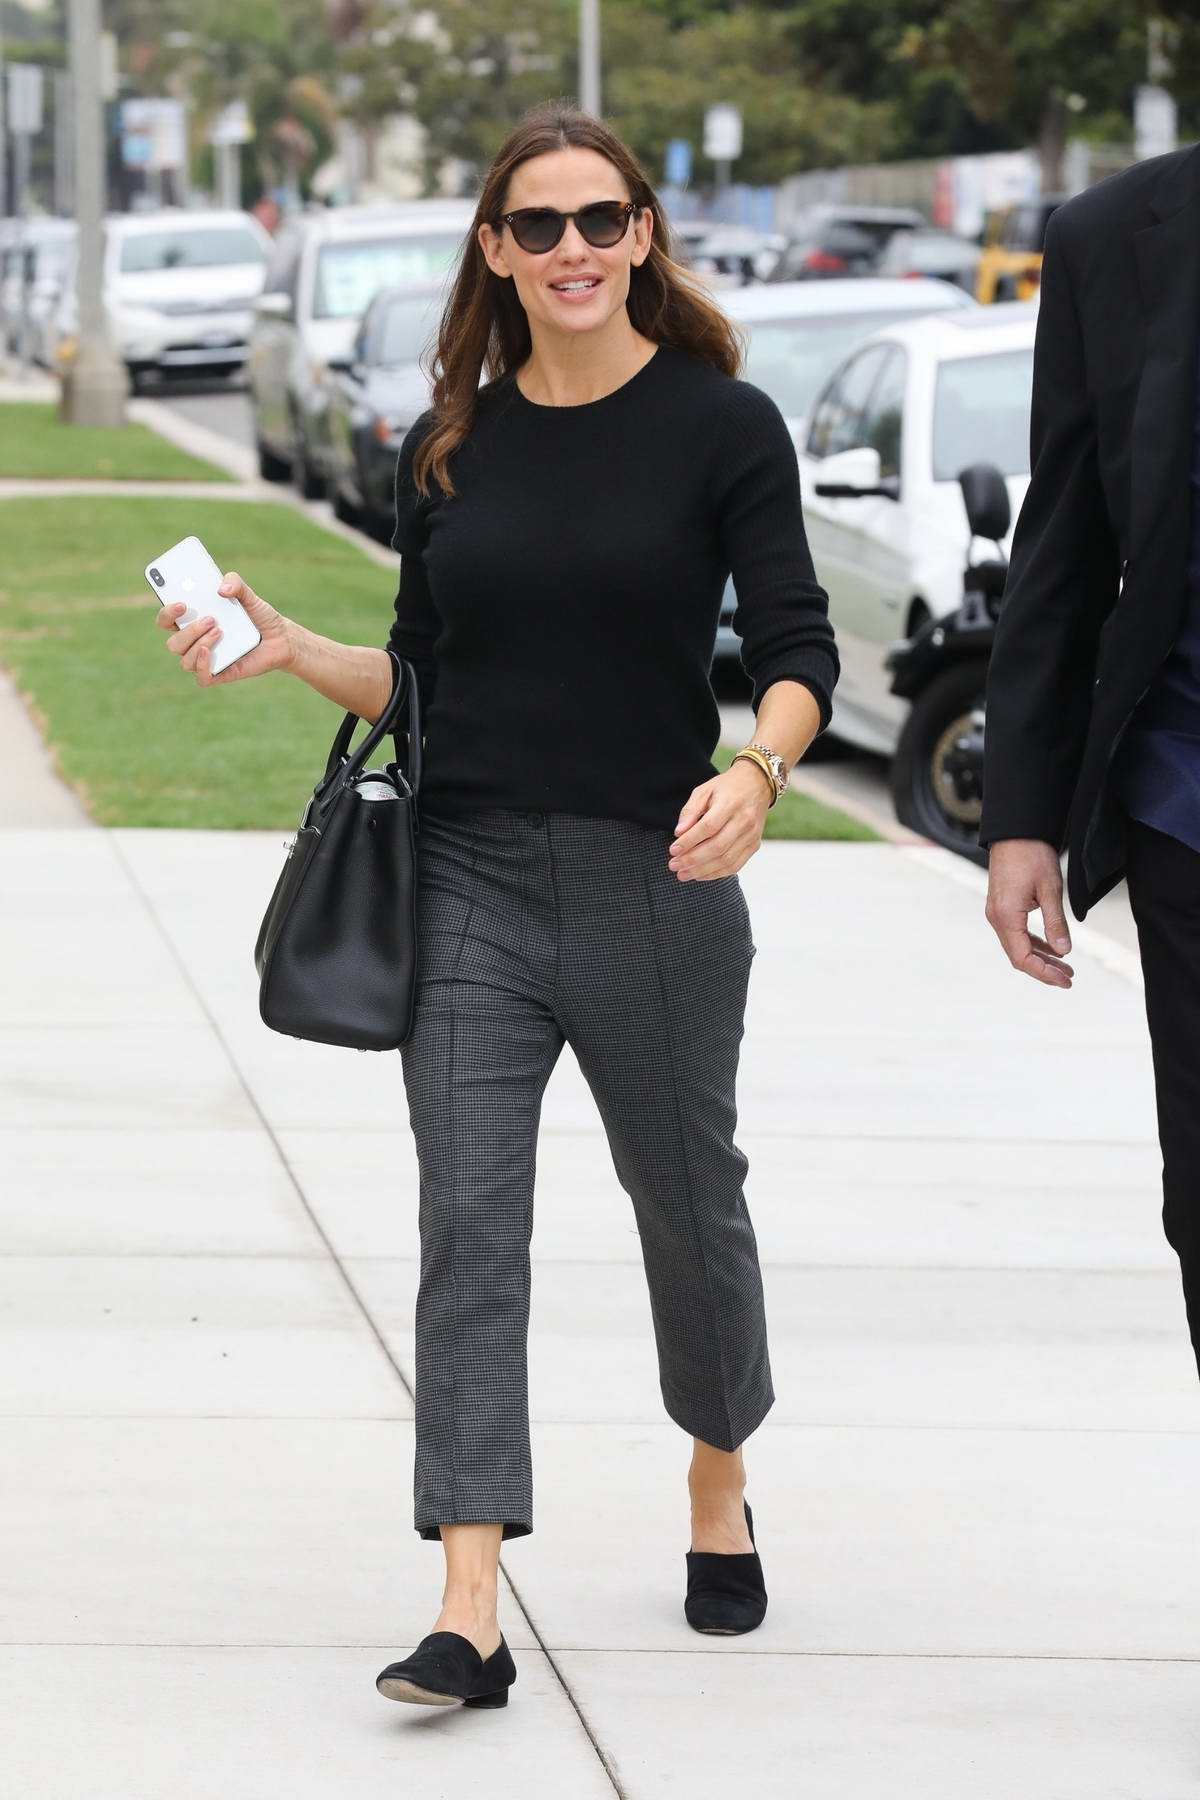 Jennifer Garner looks lovely in black top and grey trousers as she attends church services in Pacific Palisades, California